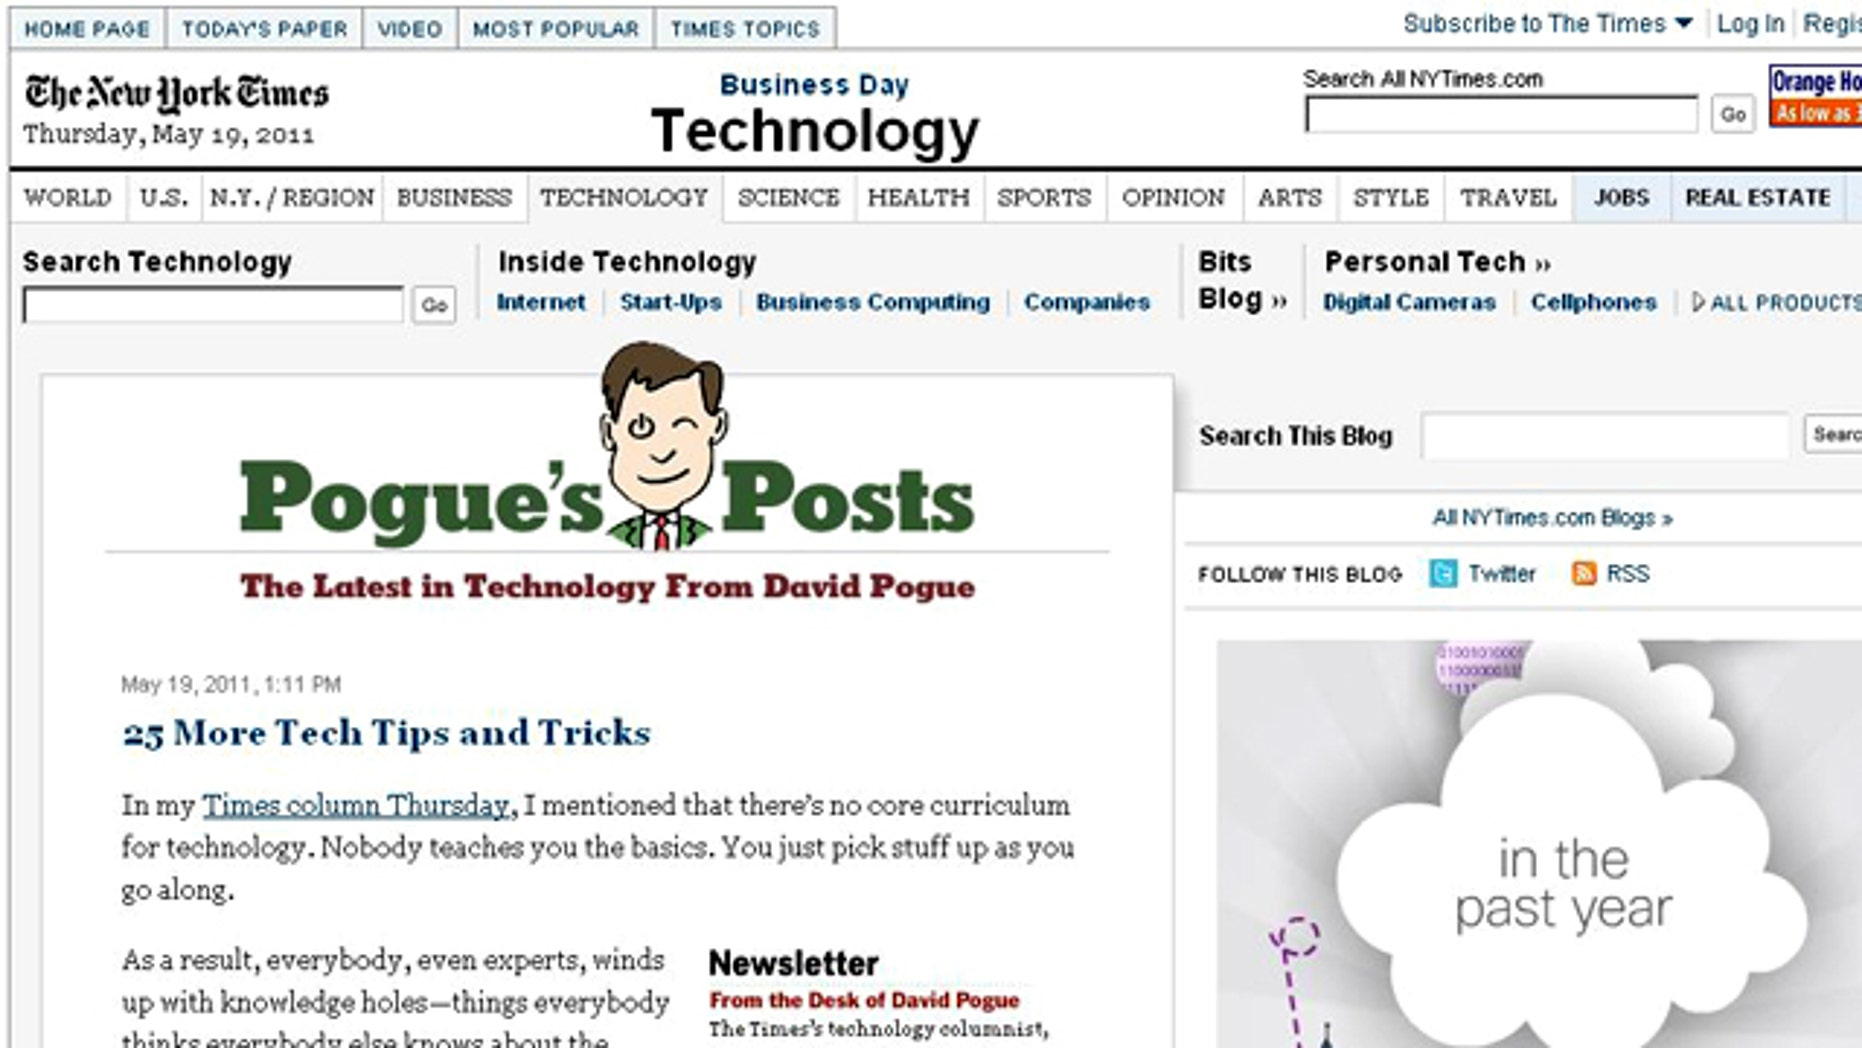 A screen shot of Pogue's Posts, a New York Times column by tech columnist David Pogue.